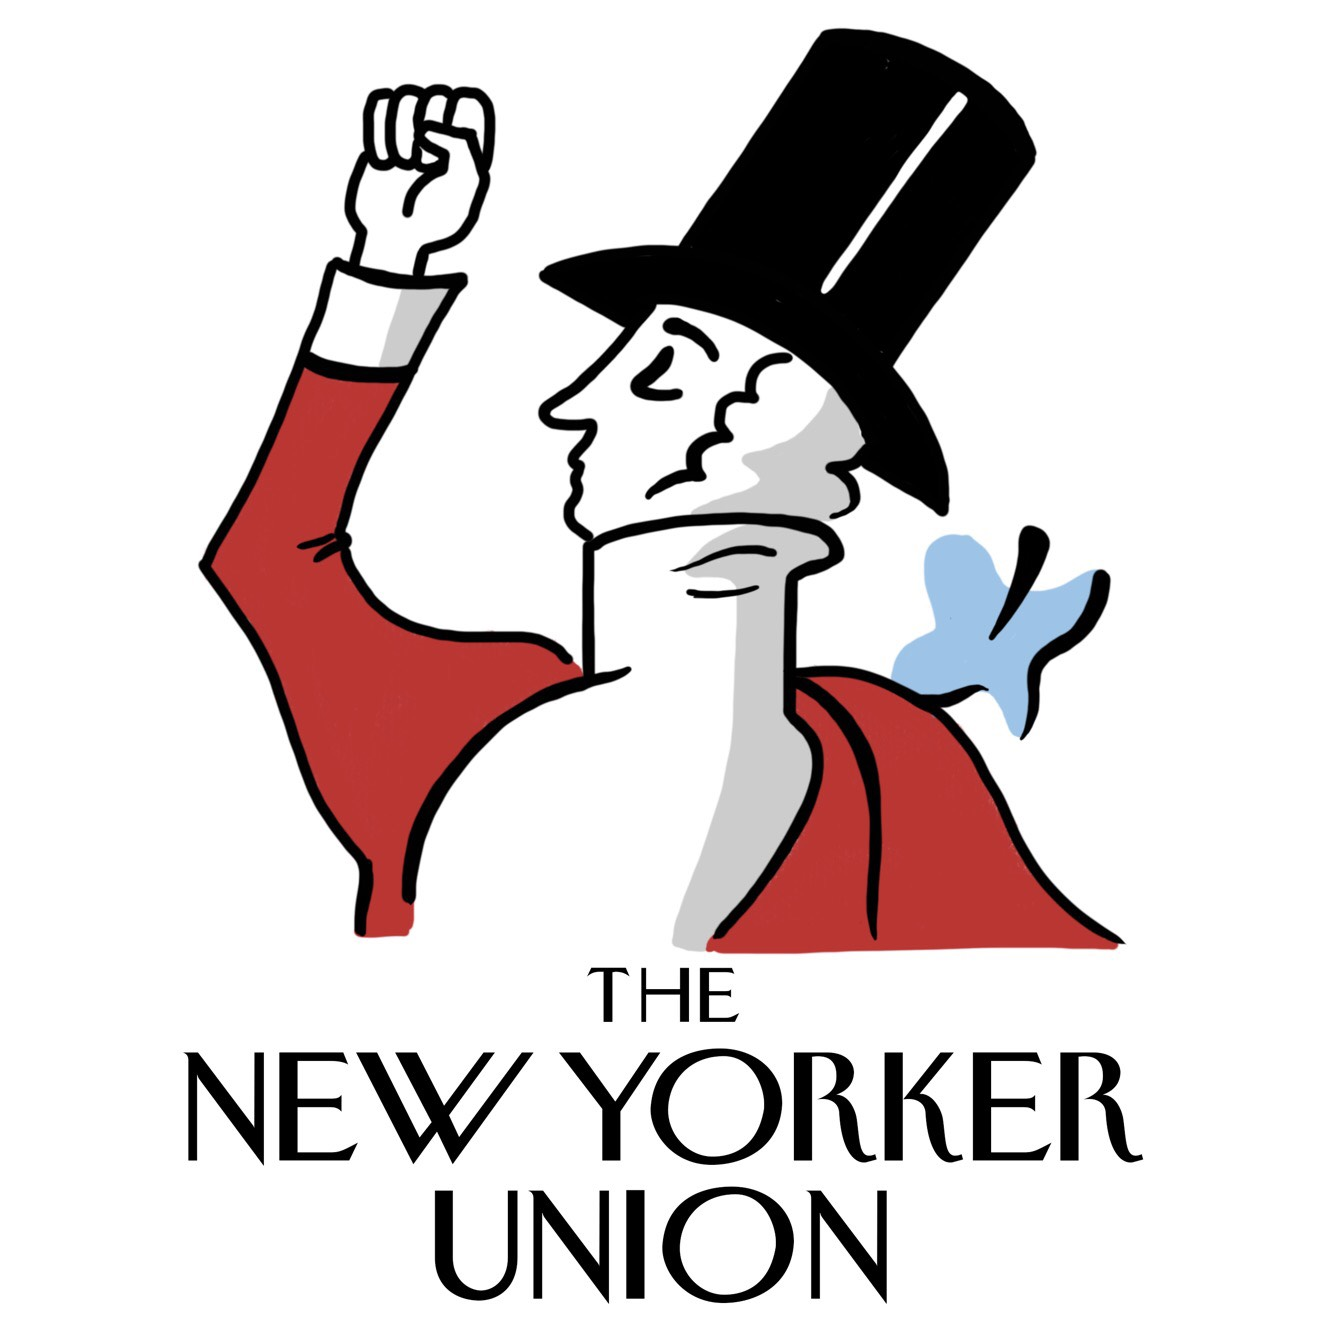 The New Yorker Union